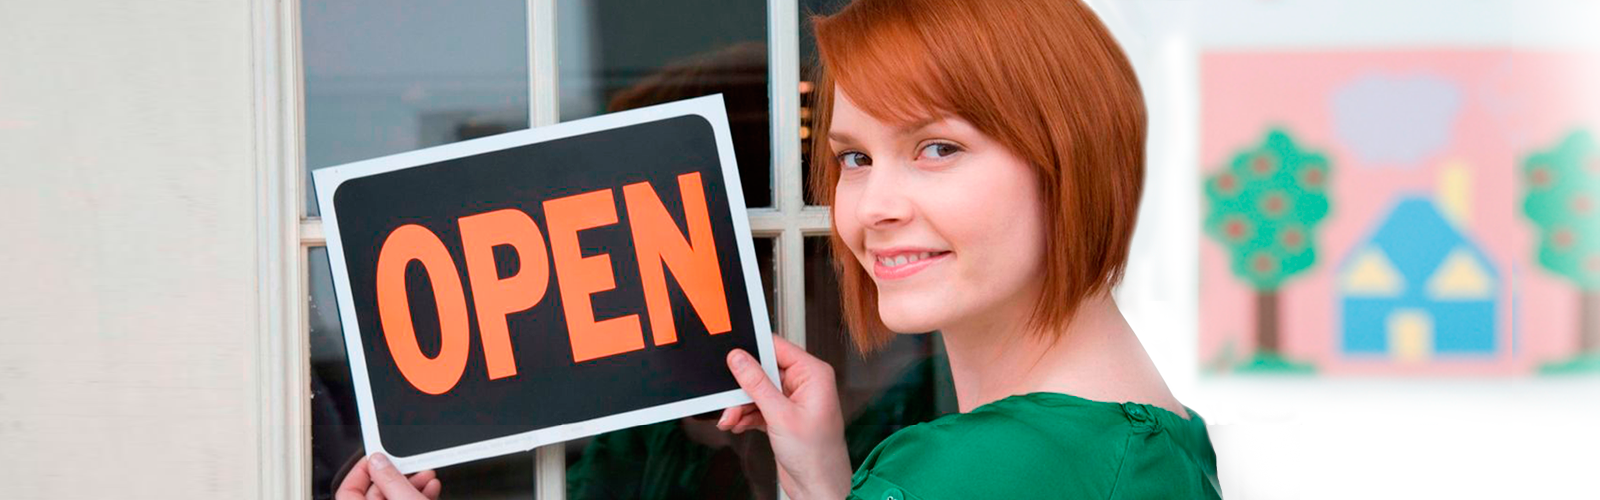 Woman with open sign on door